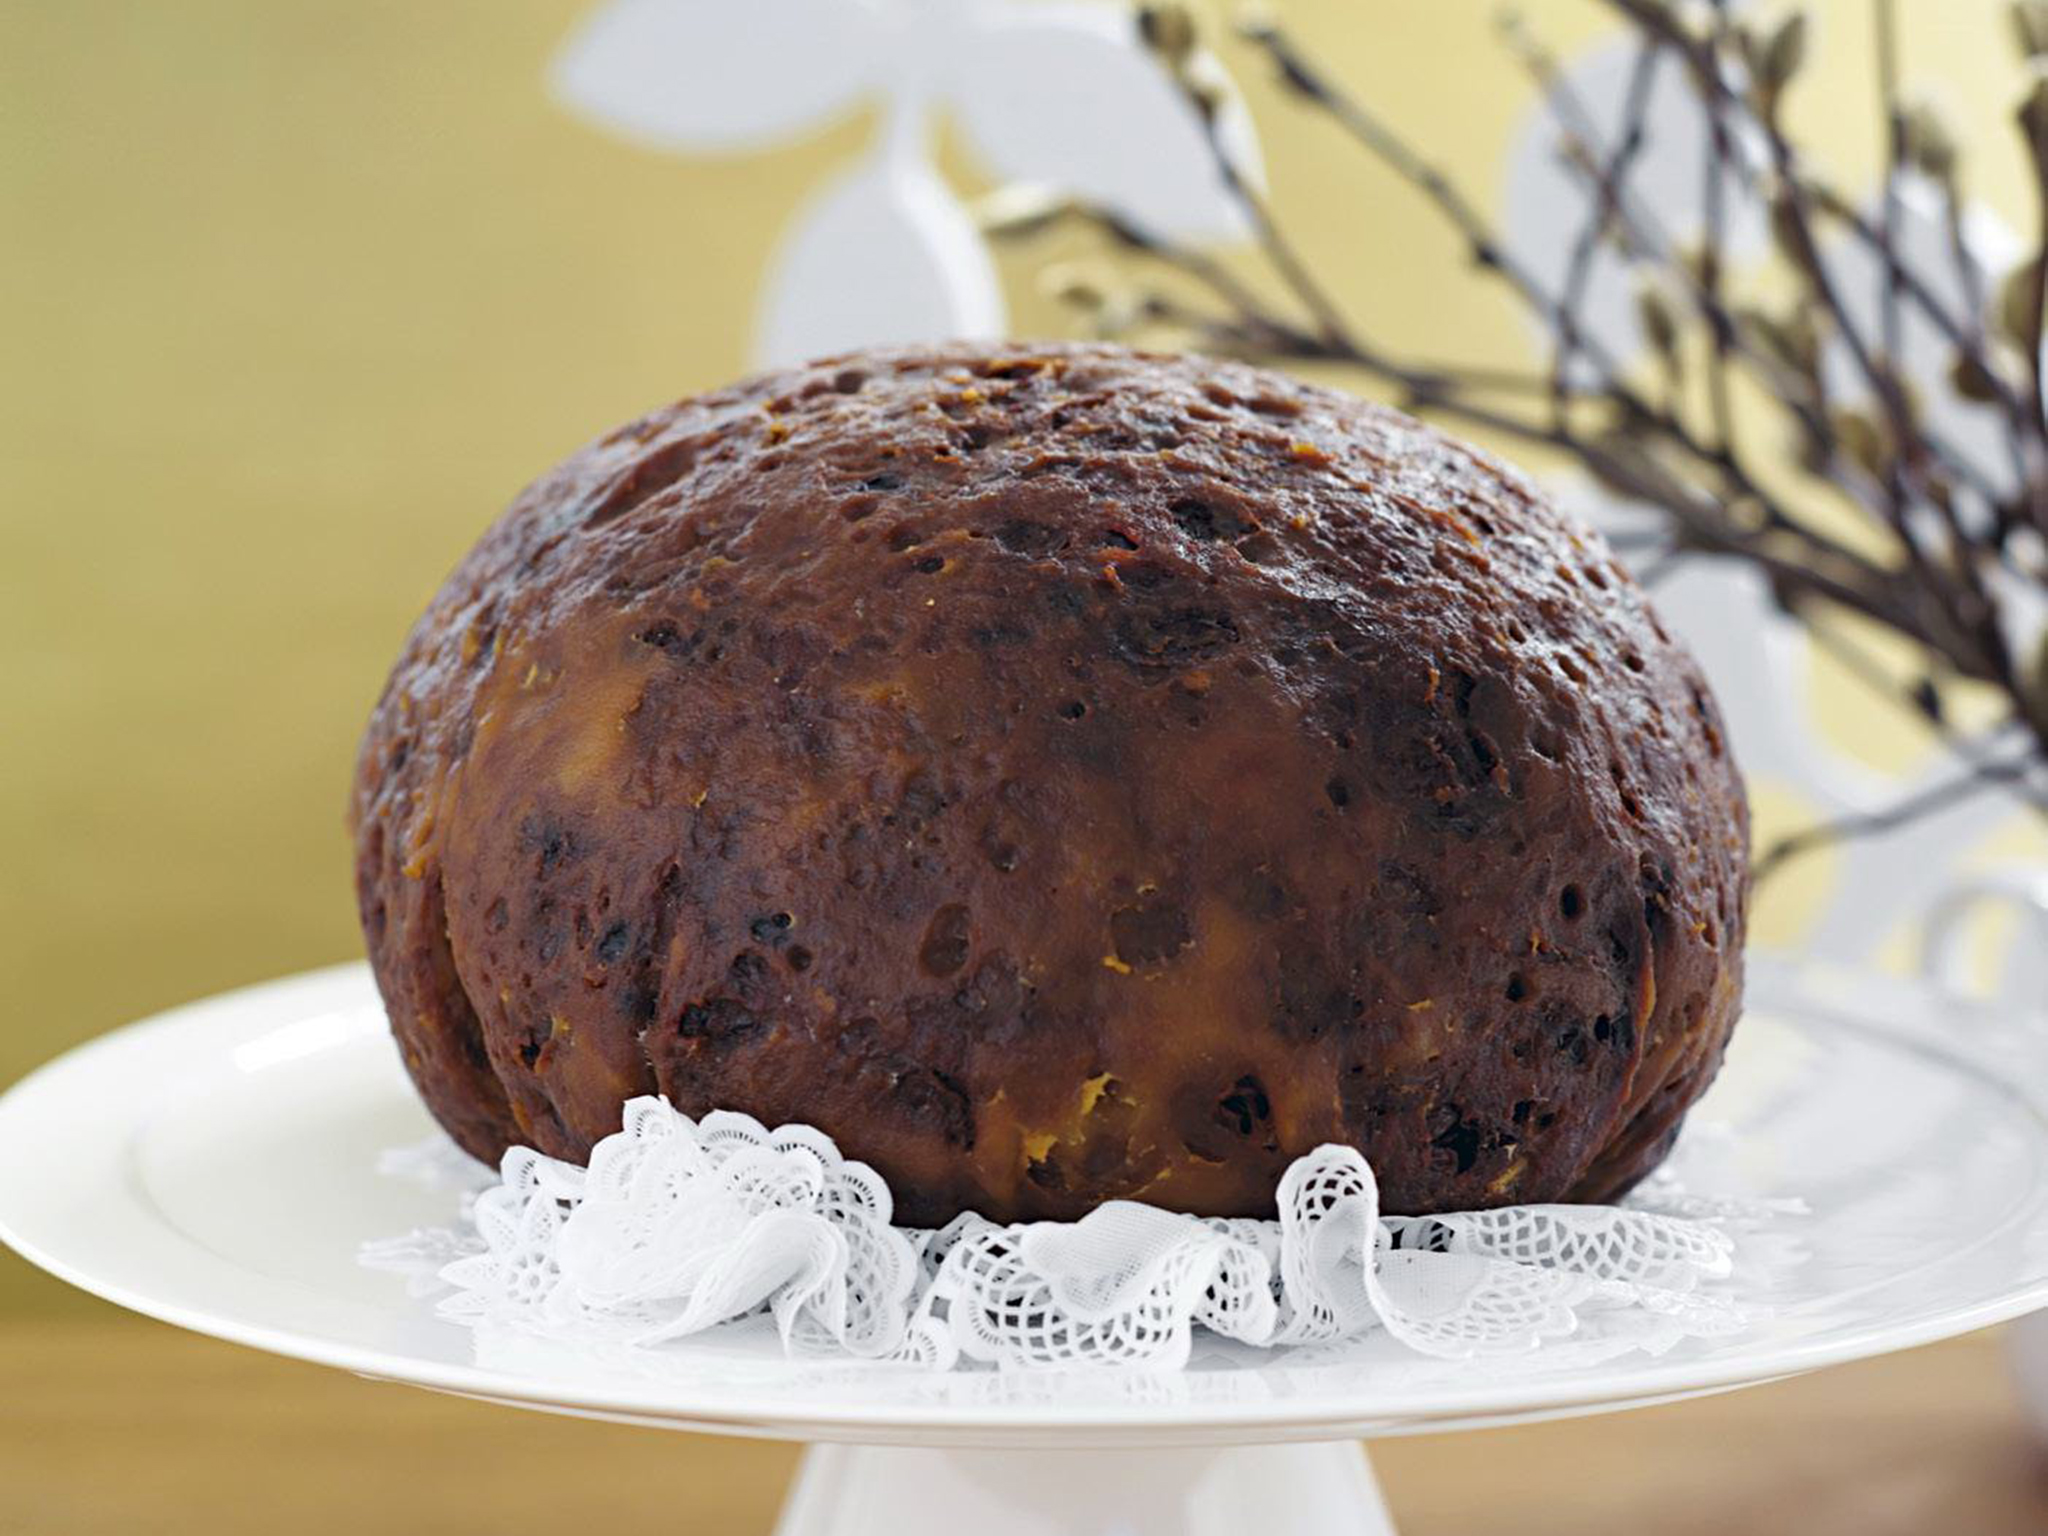 Classic boiled christmas pudding recipe | Food To Love